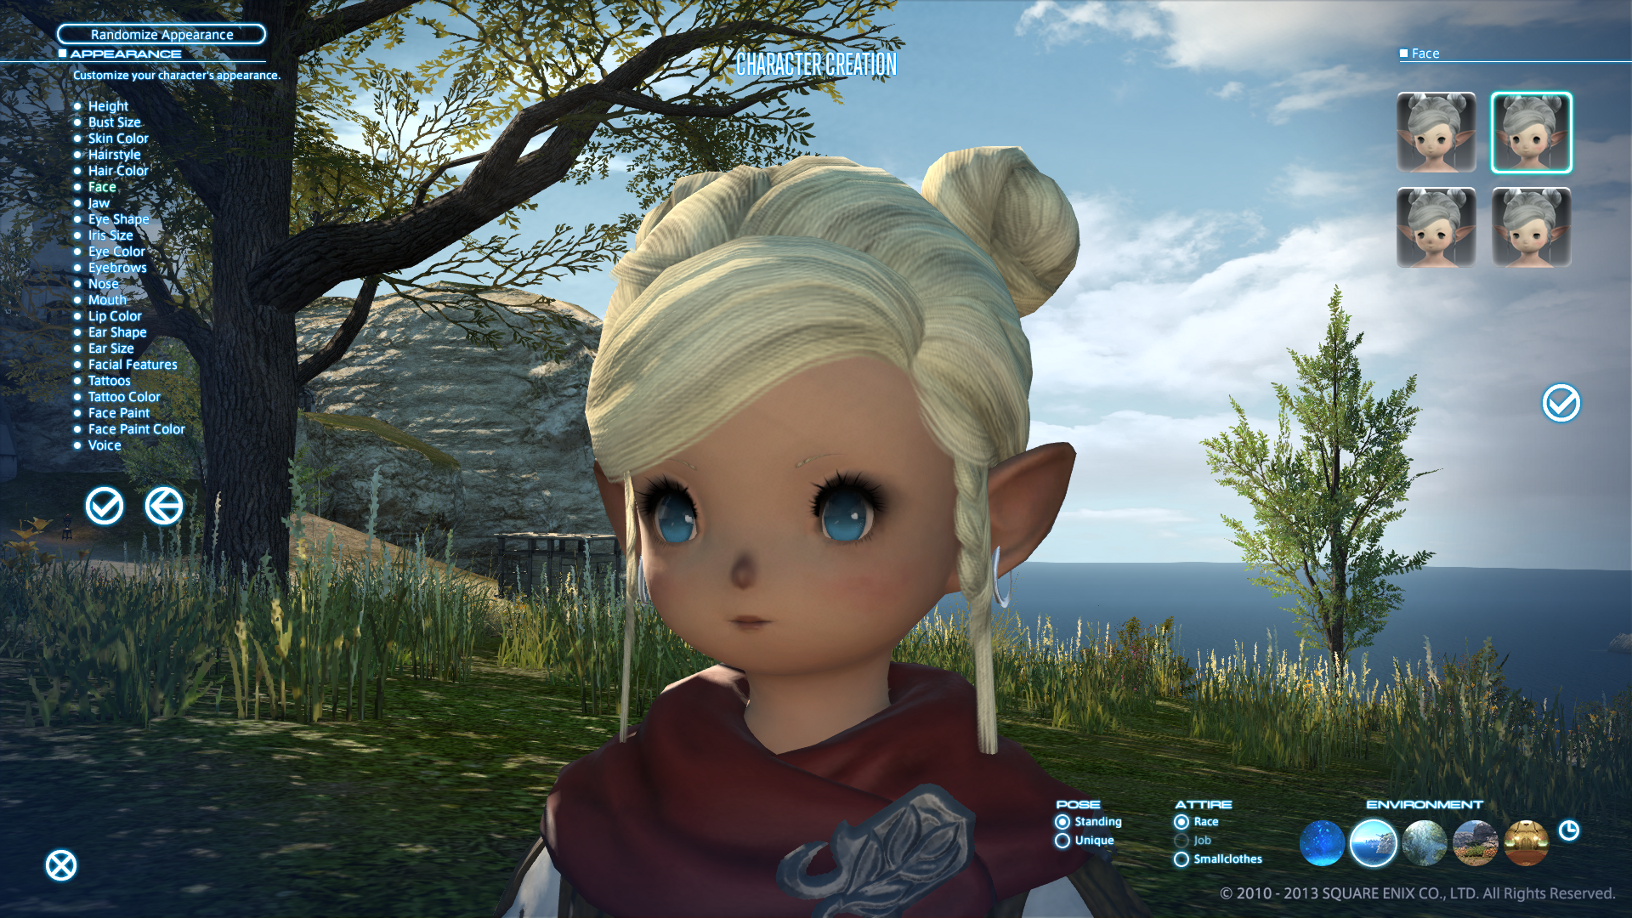 jigglyjam ffxiv this hair ffxi character like color what green more help pinkish look akin cause laughing stop cannot eyesmouth expression website official best here found also actually match recreating grown accustomed quite personally pictures your benchmark going heres style just char post slightly darker edit2 pinkredish